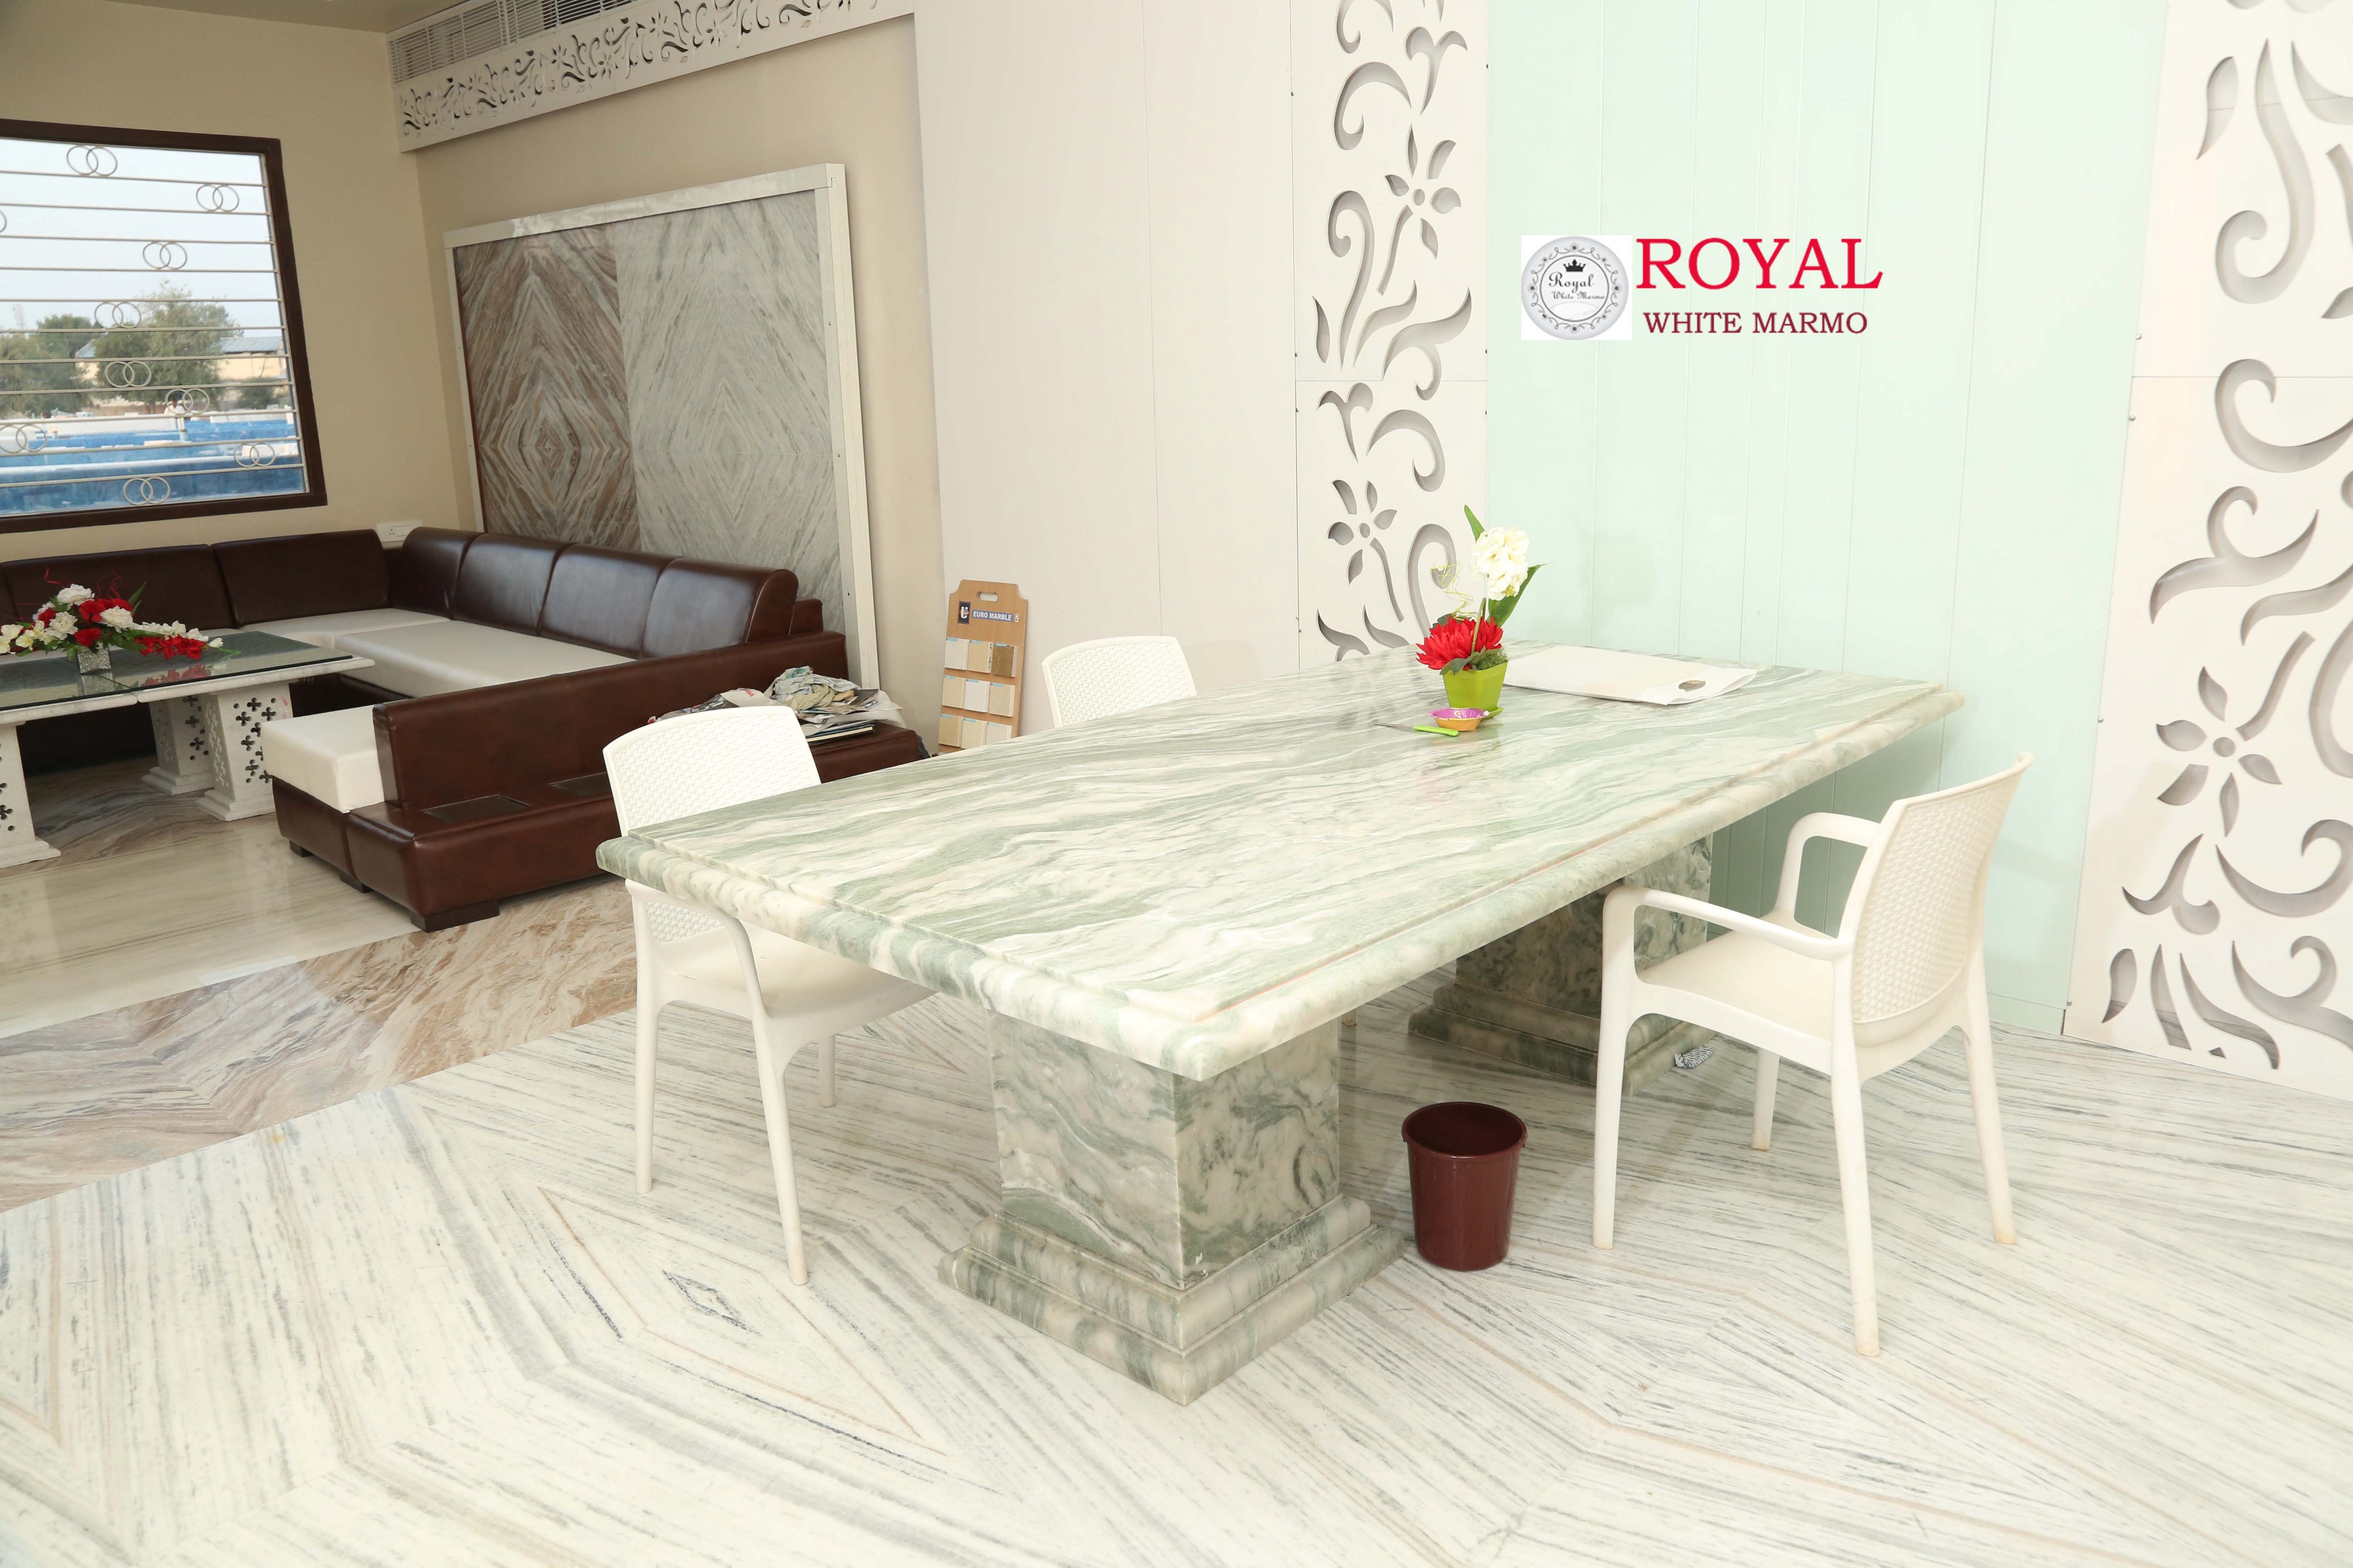 Top Indian Marble Company in India Royal White Marmo